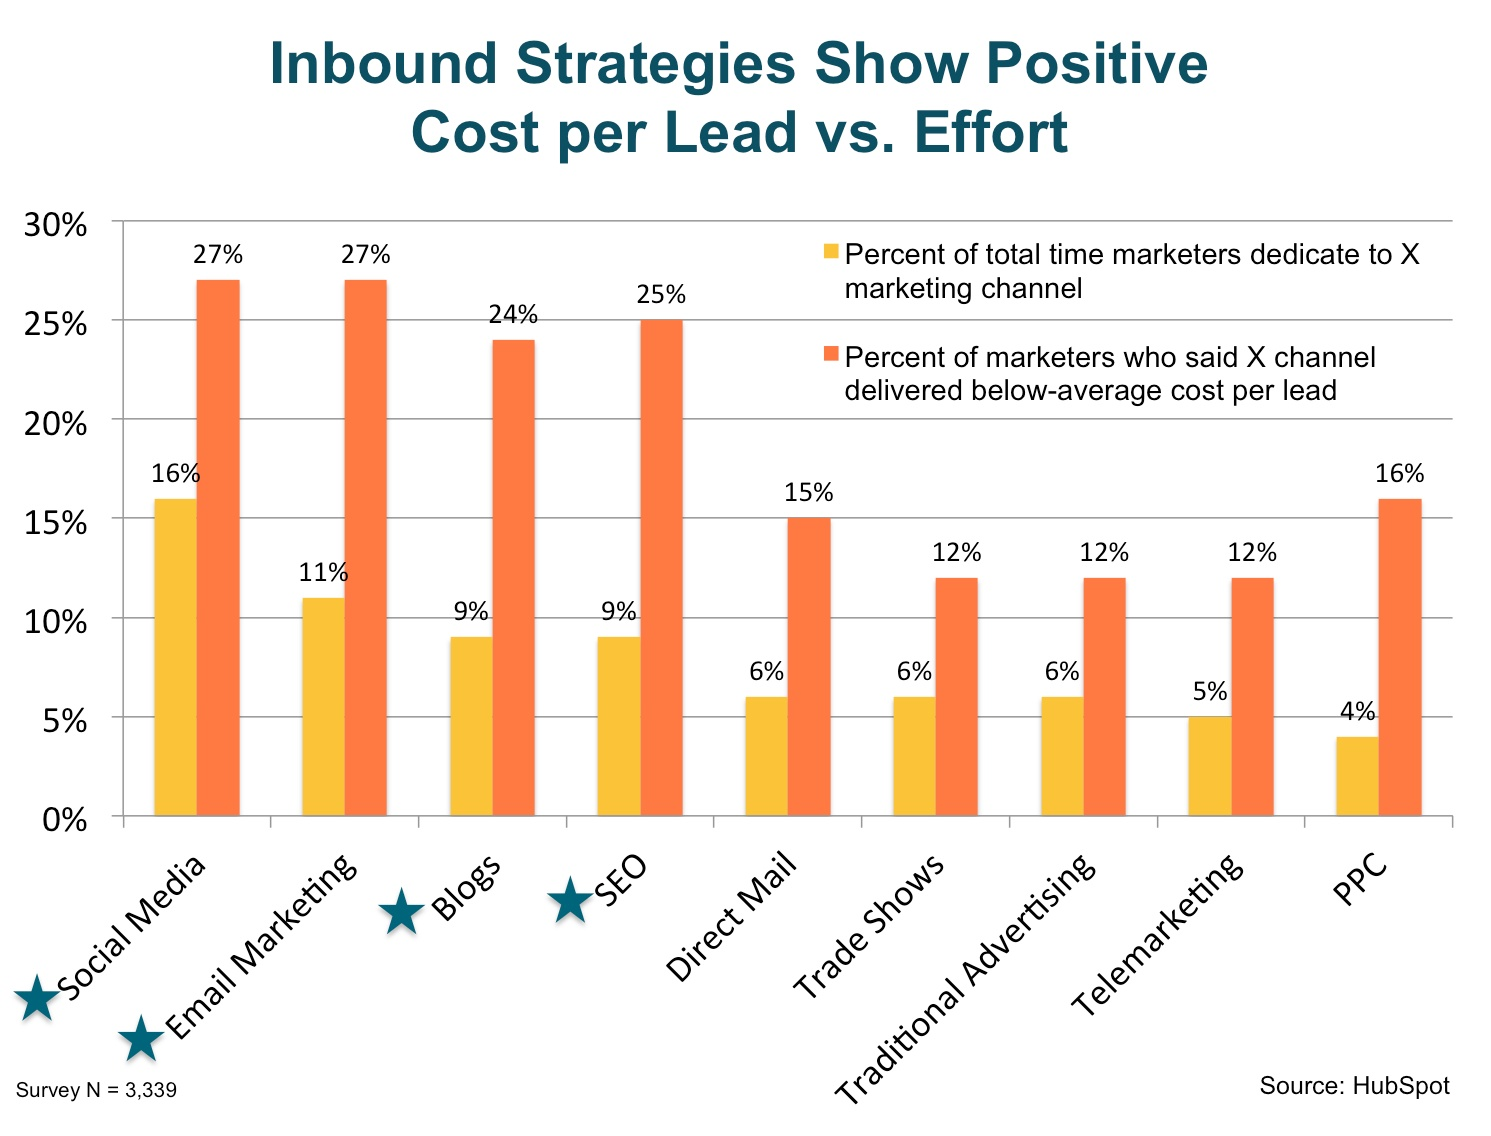 inbound_strategies_show_positive_cost_per_lead_vs_effort.jpg